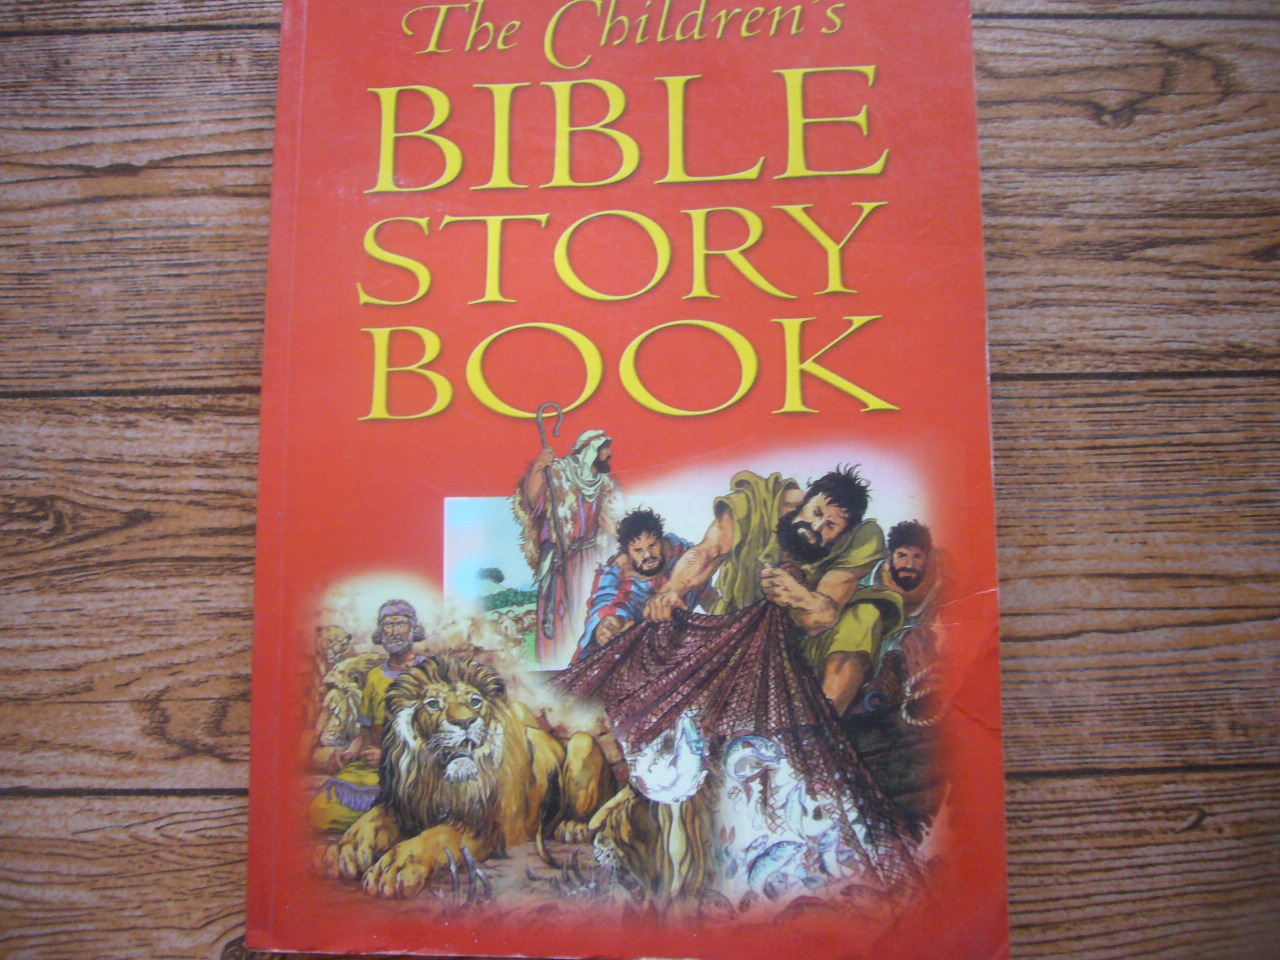 The Children's Bible Story Book